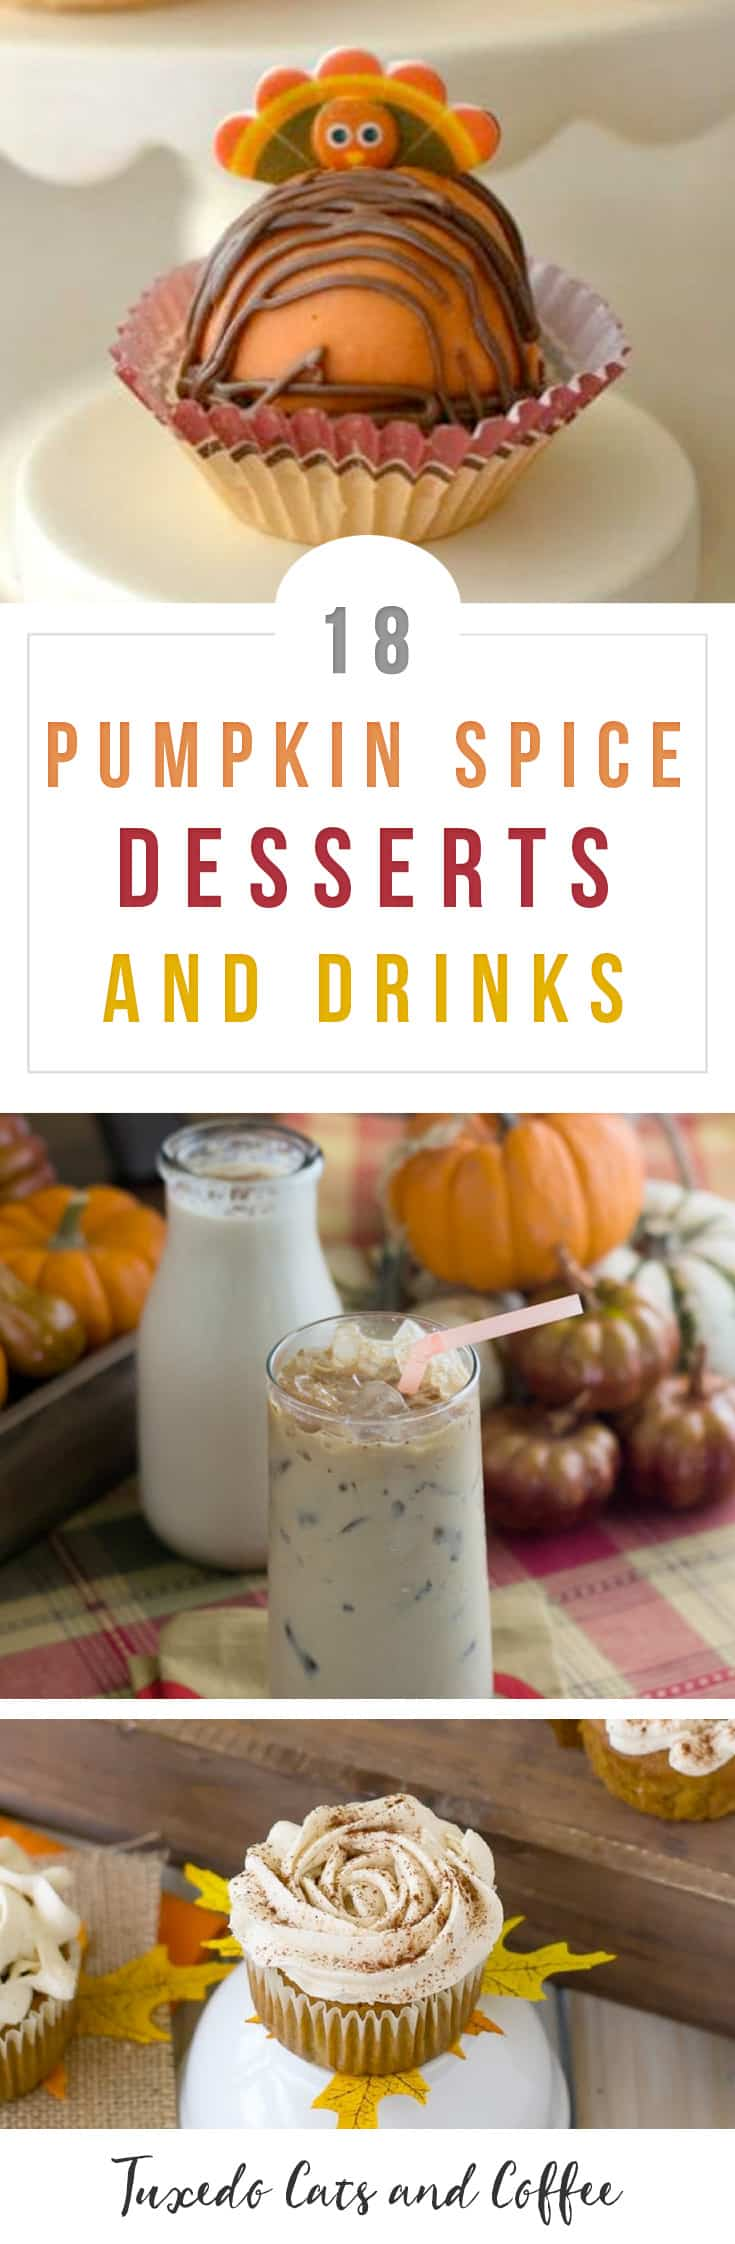 Fall is one of my favorite seasons - the leaves change colors, the weather cools down, boots and sweaters come out, and of course, there's pumpkin spice everything! In this post I've rounded up 18 pumpkin spice recipes for fall that will have you warmed up and cozy by the fire with your pumpkin spice latte - or other treat - in hand. :)